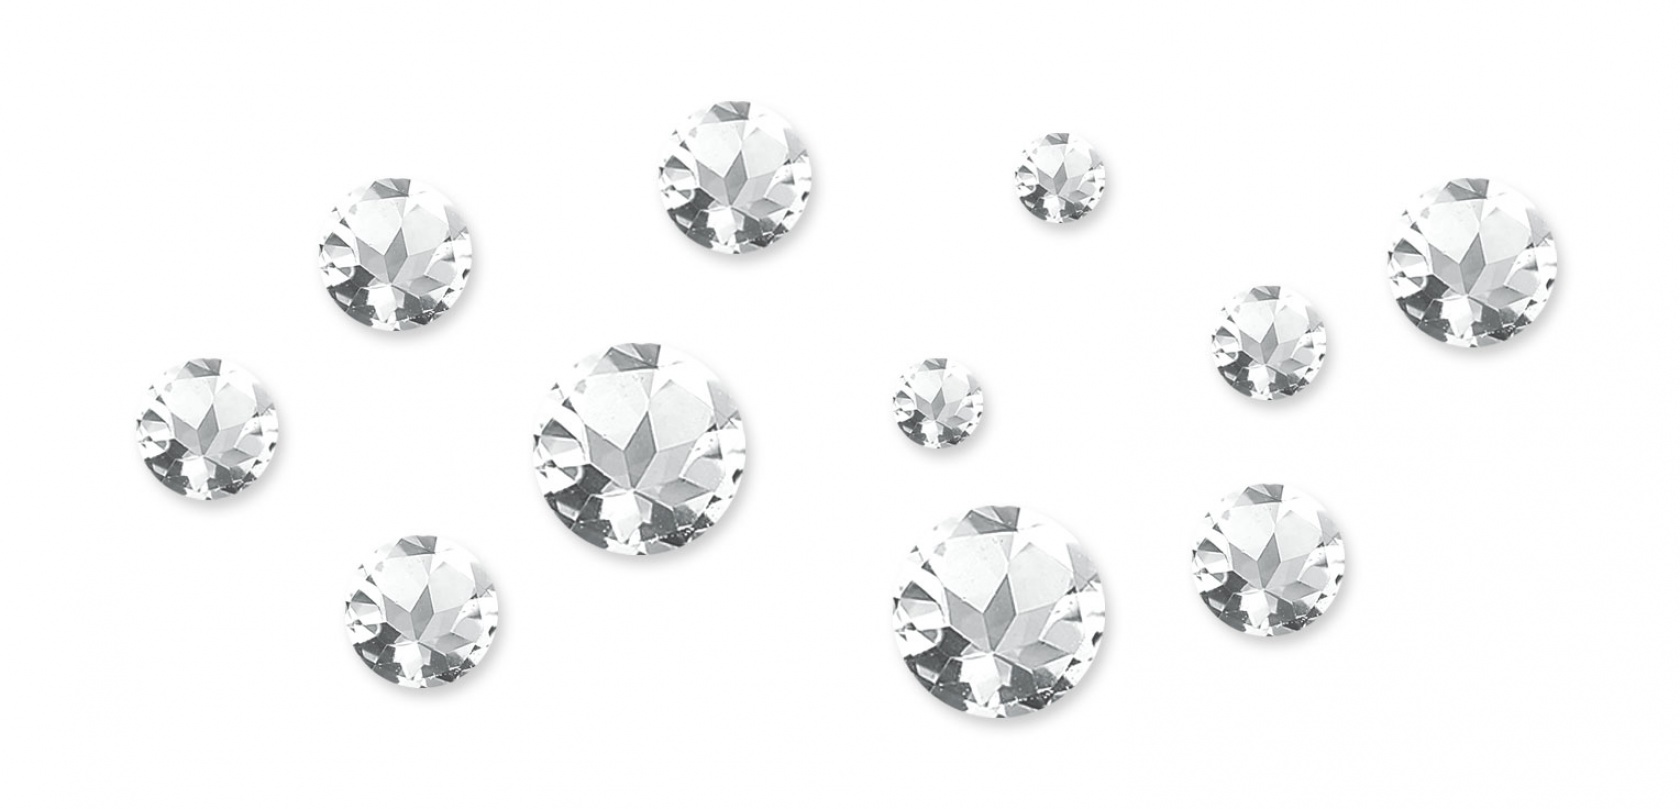 About White Topaz